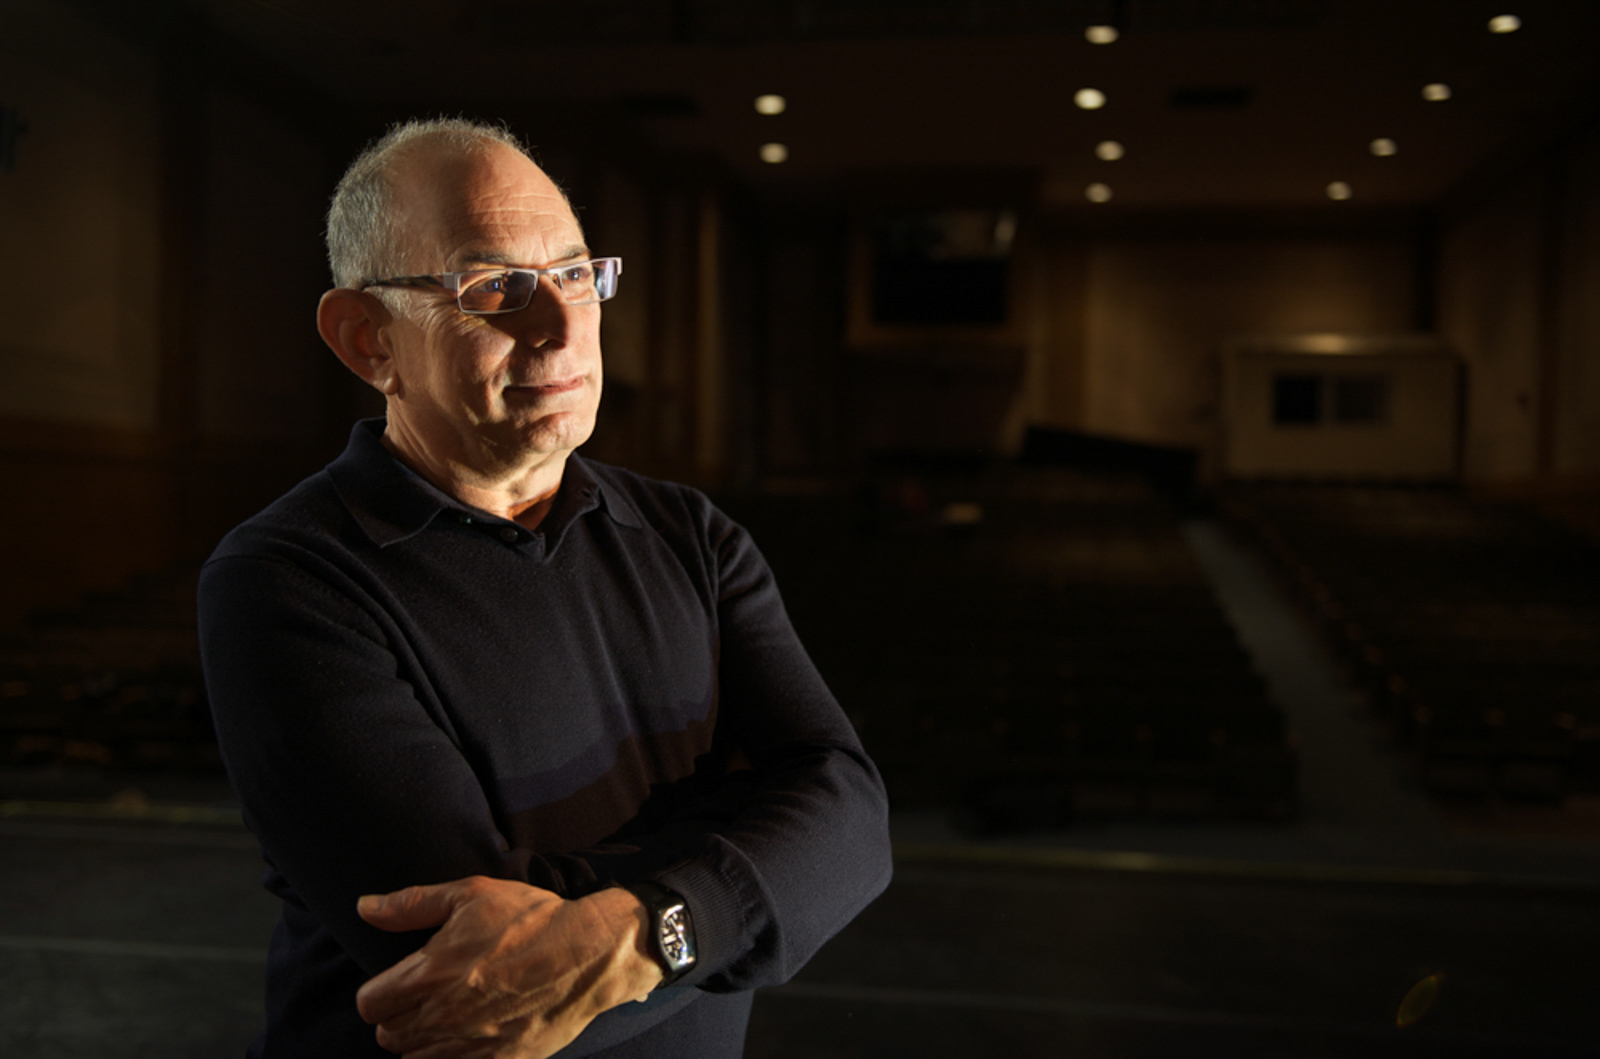 Environmental portrait of man with arms crossed, in auditorium